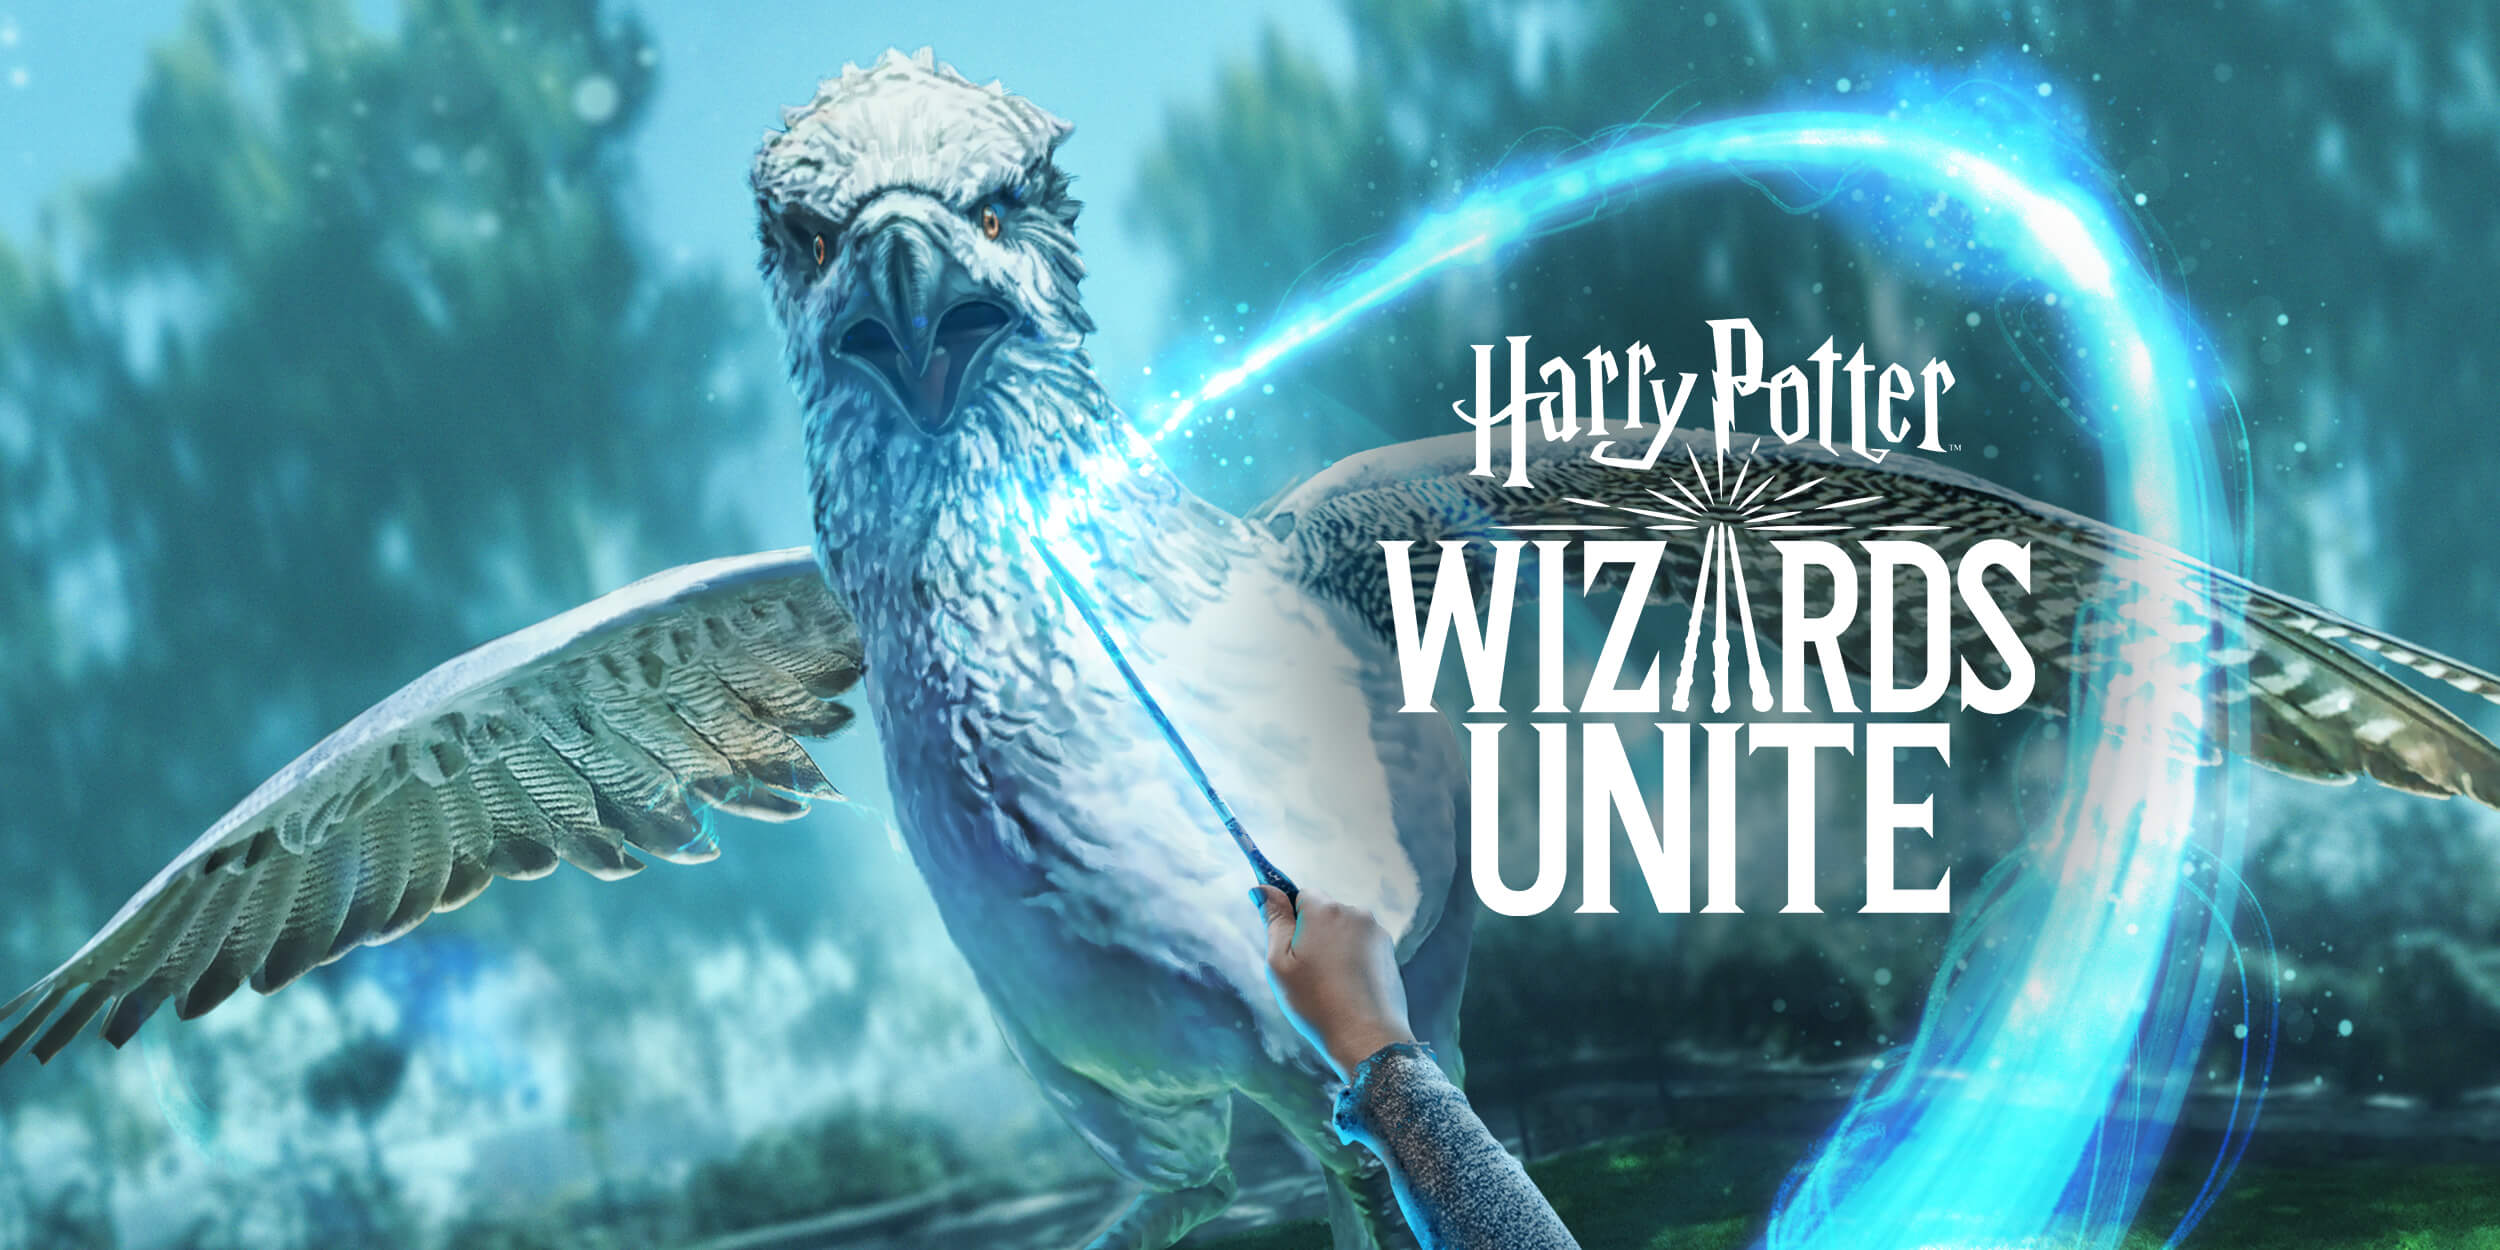 Premiers aperçus de Wizards Unite, ou Harry Potter Go !